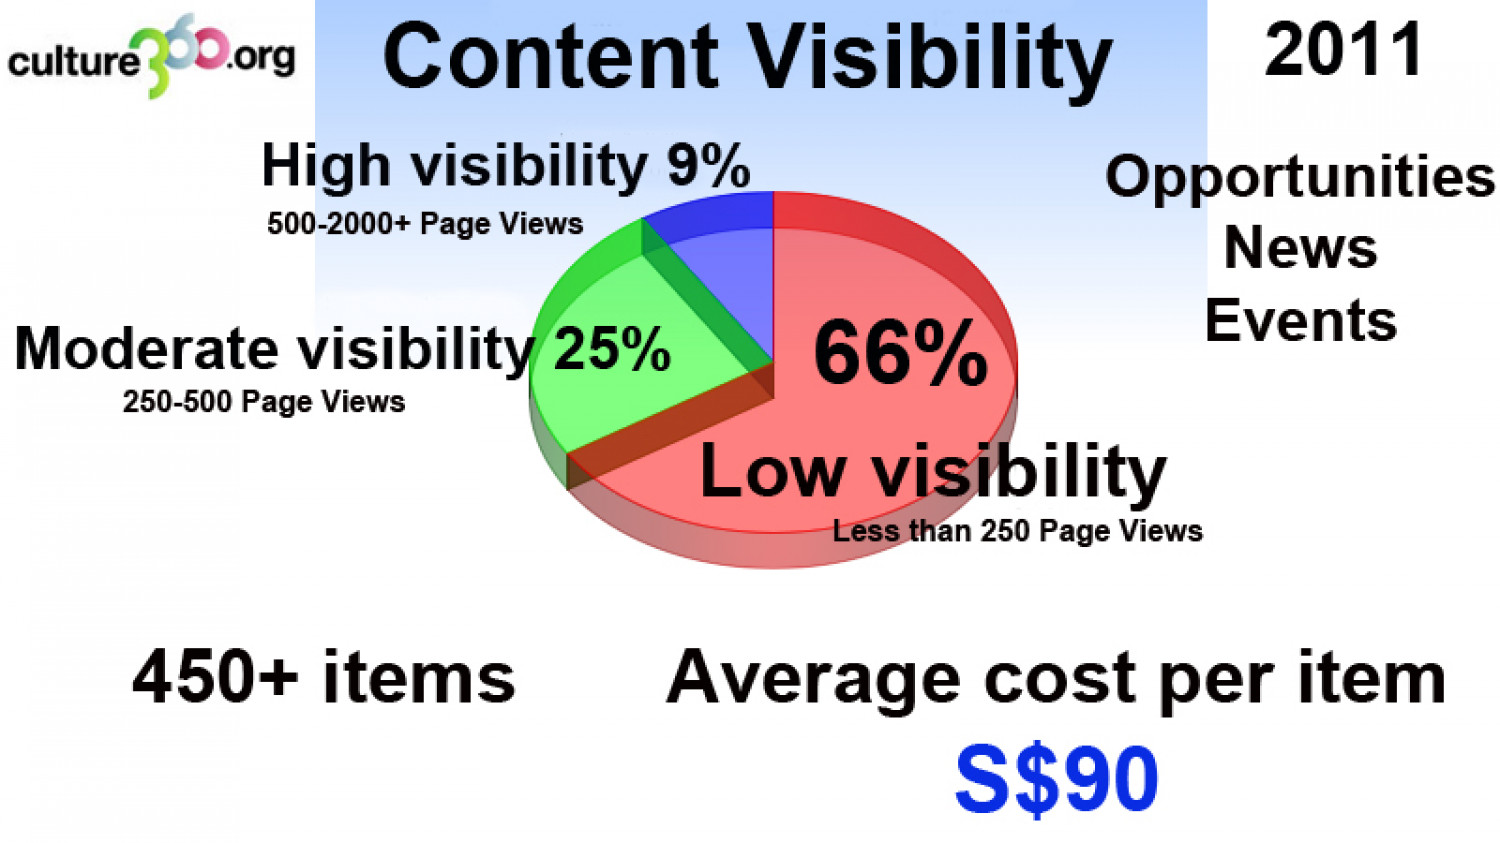 culture360.org Content Visibility 2011 Infographic